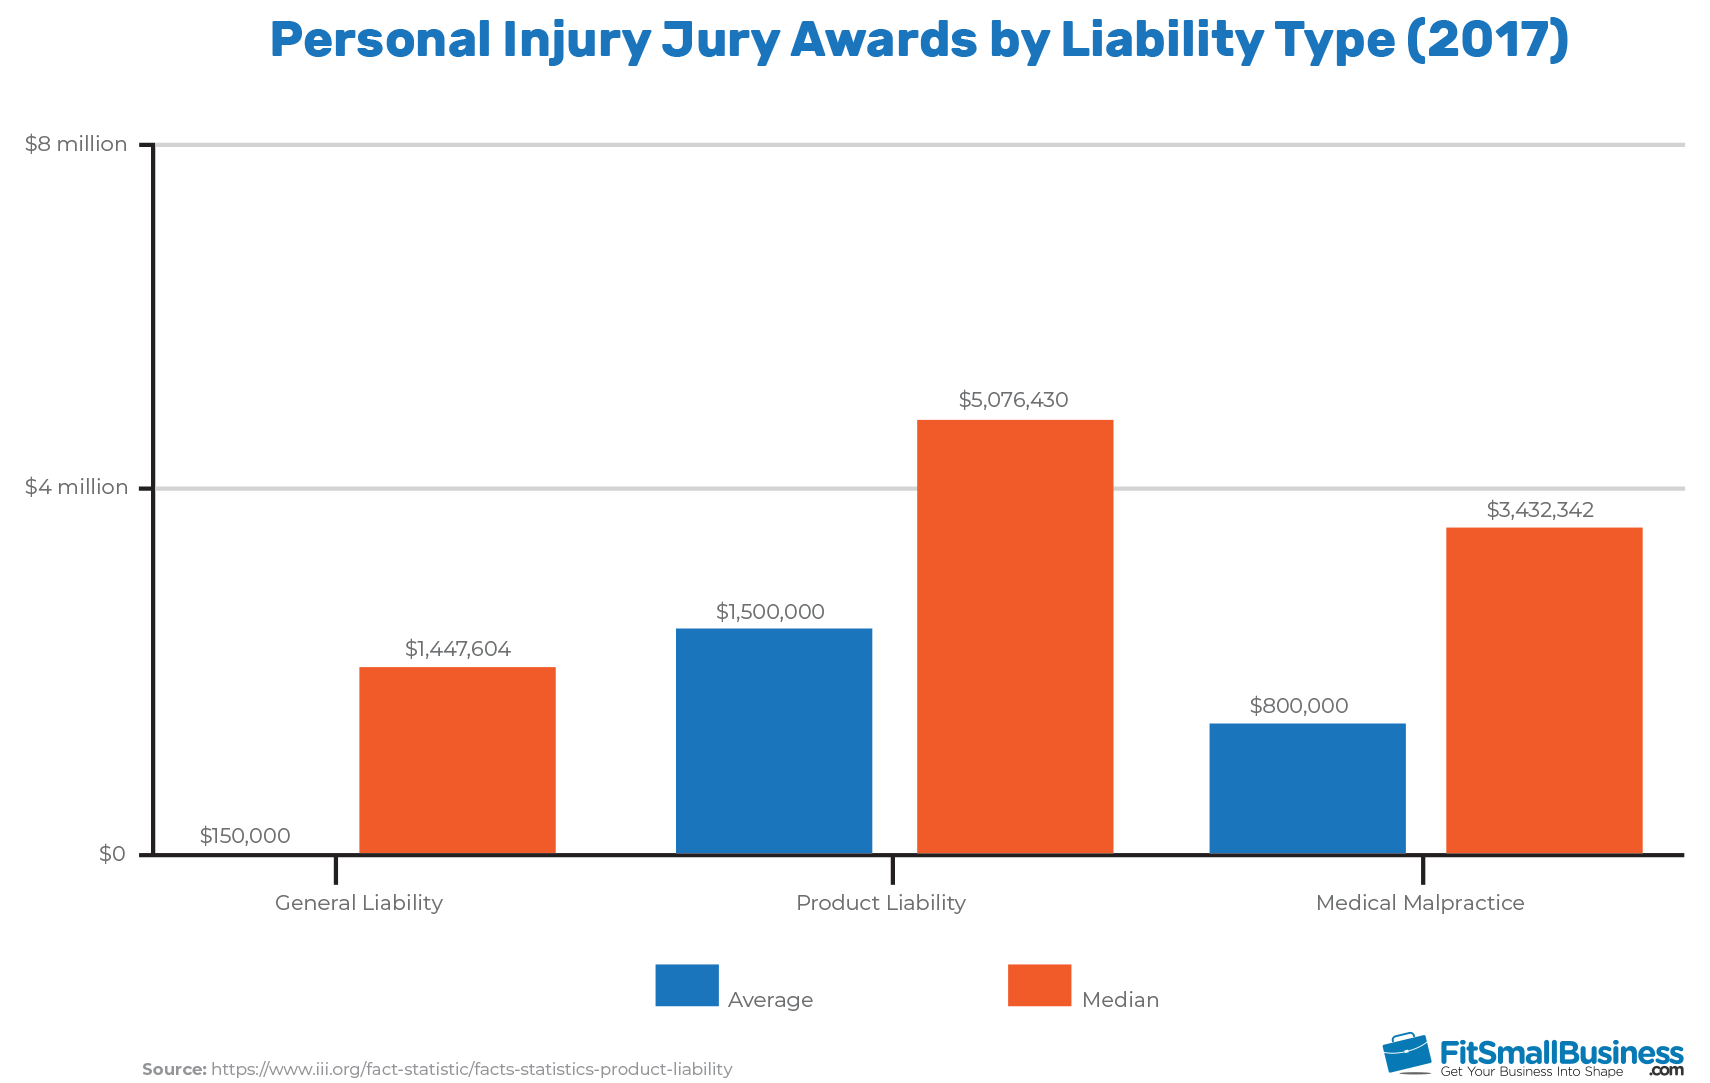 Personal Injury Jury Awards by Liability Type Chart